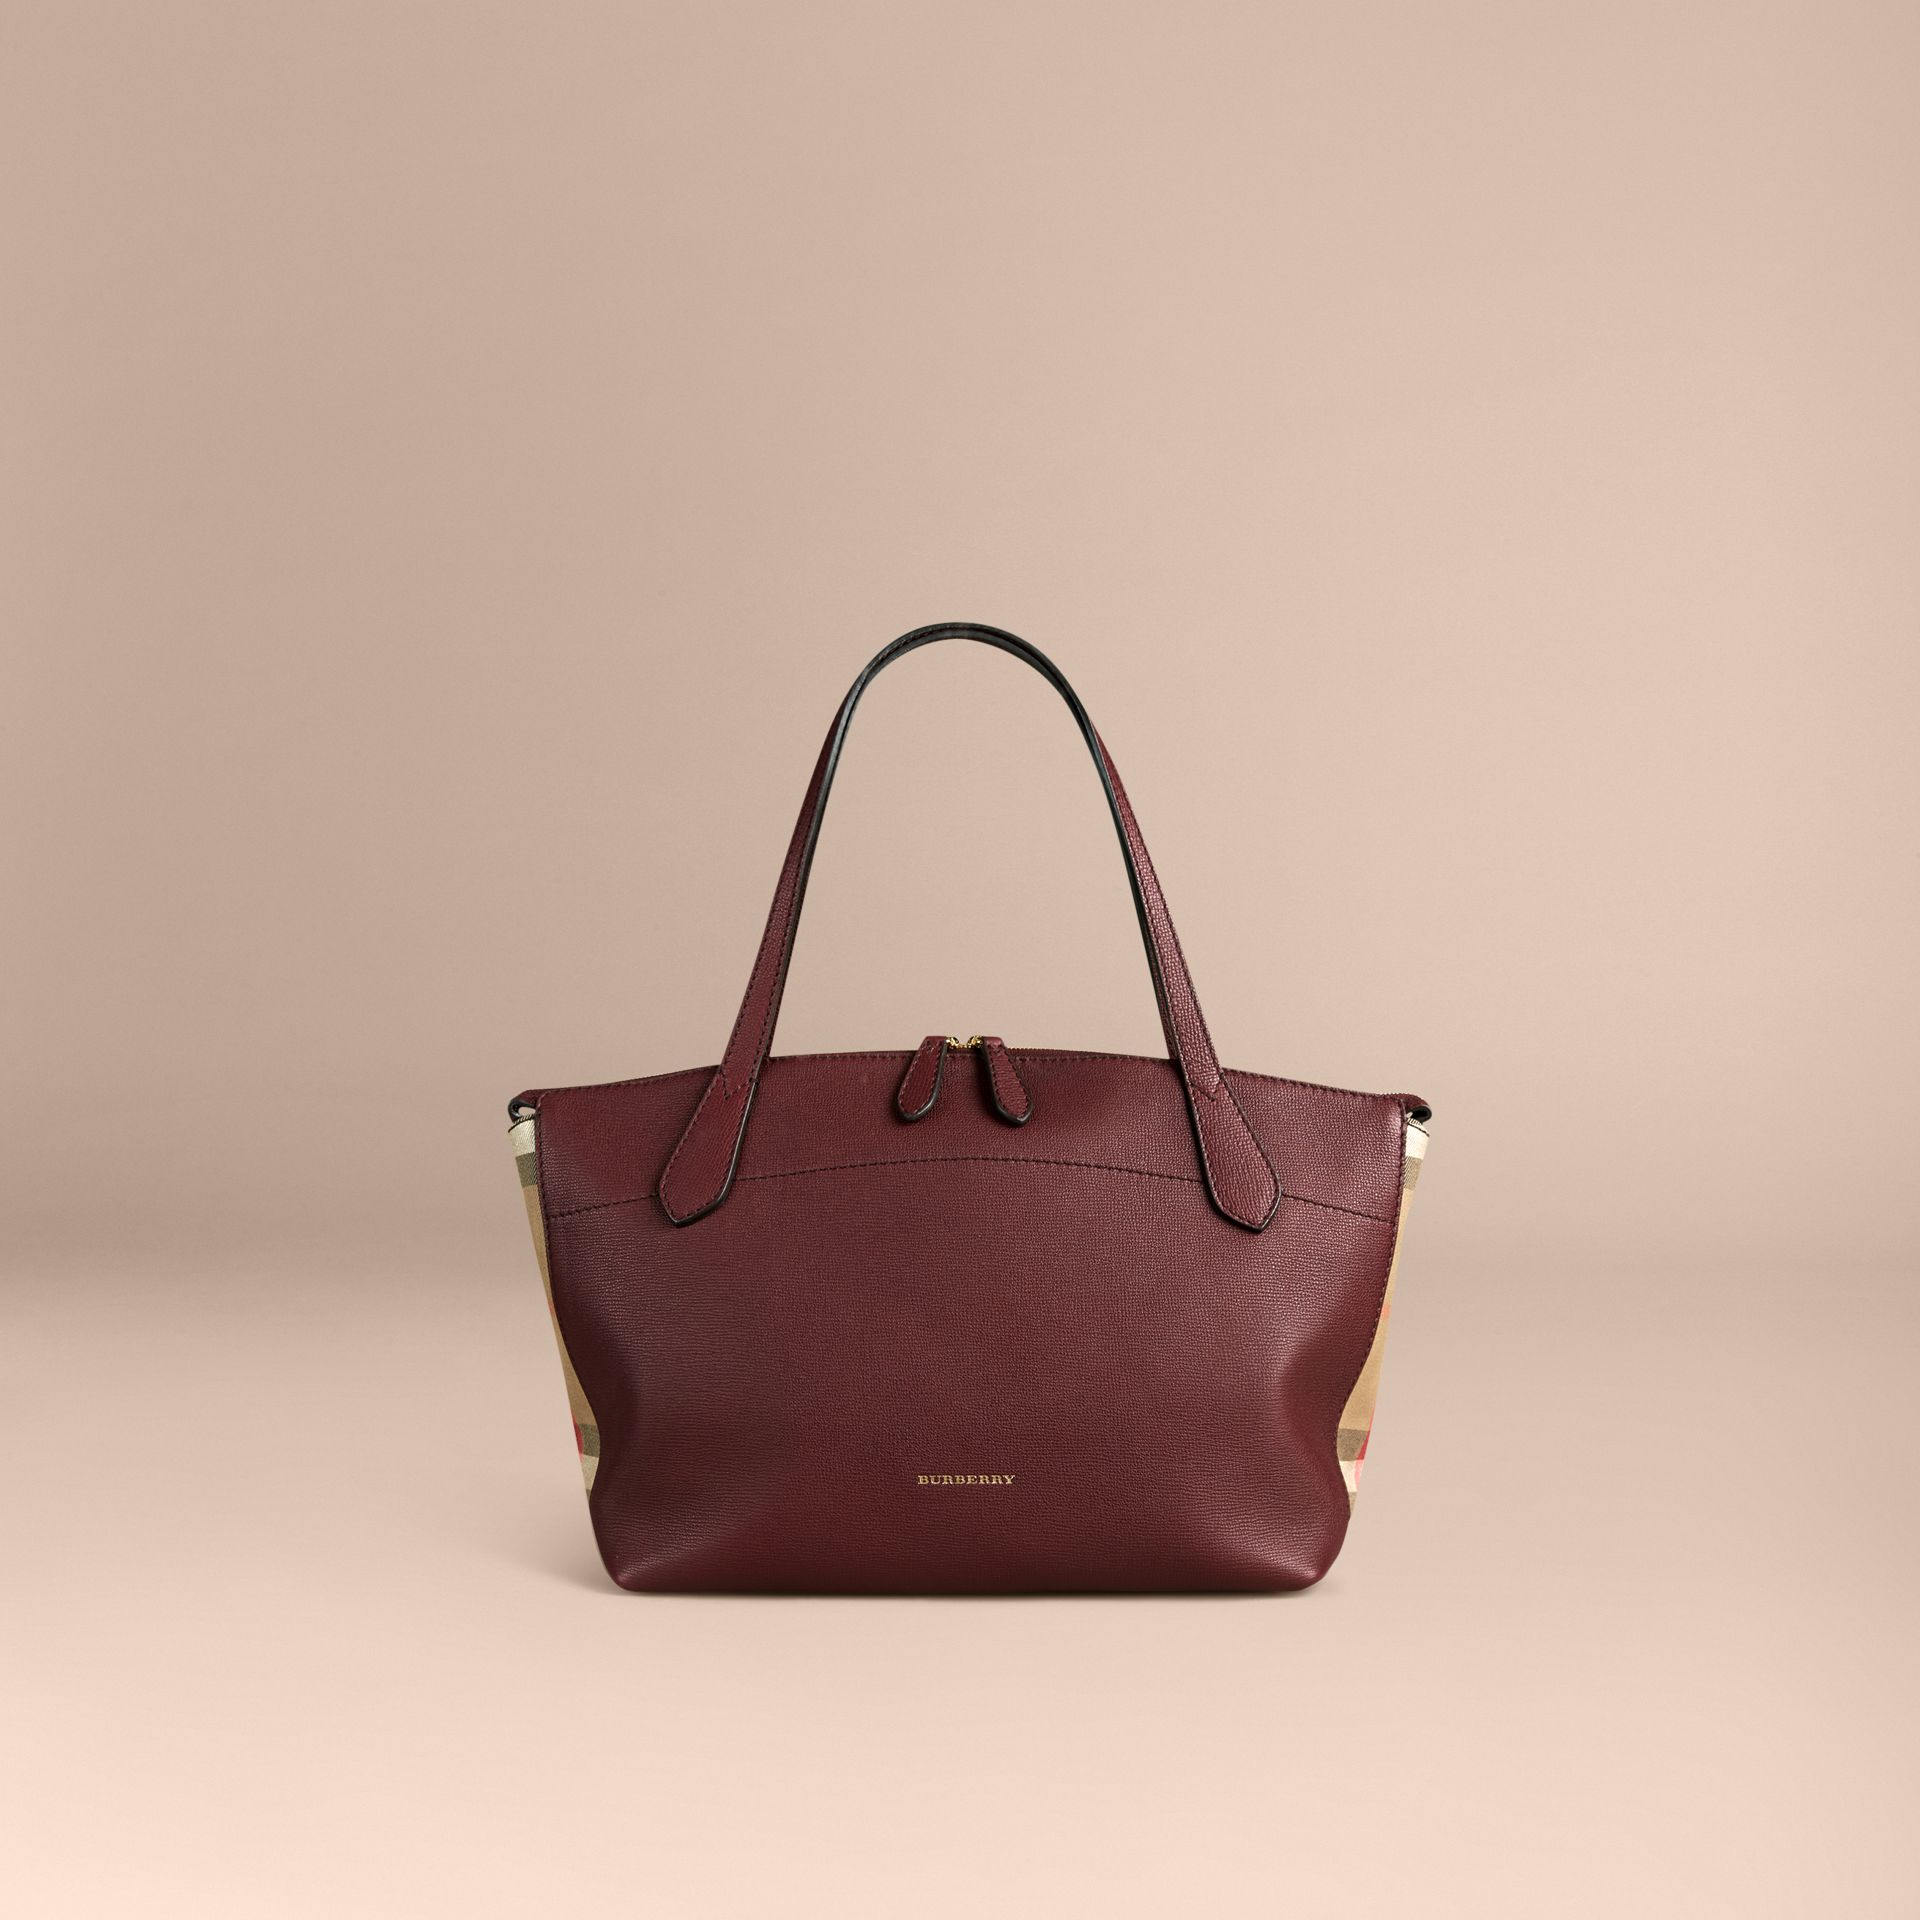 Rouge acajou Sac tote medium en cuir et coton House check Rouge Acajou - photo de la galerie 7